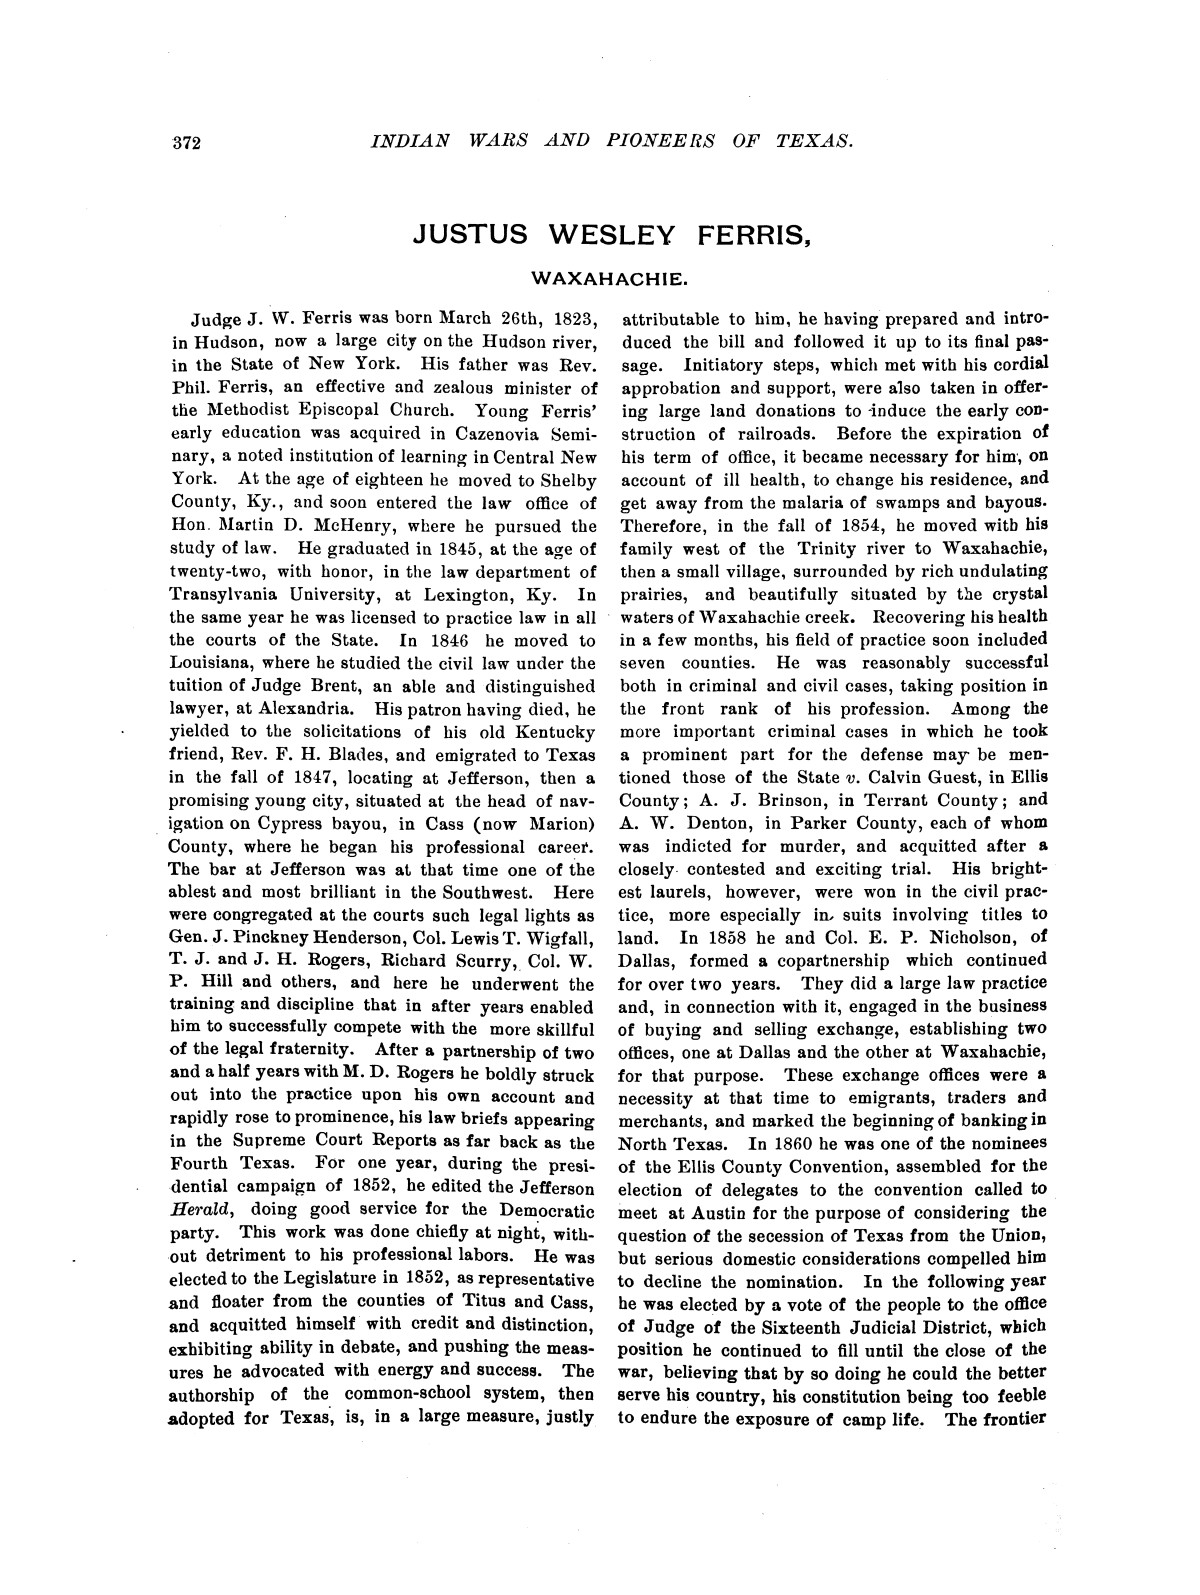 Indian wars and pioneers of Texas / by John Henry Brown.                                                                                                      [Sequence #]: 448 of 894